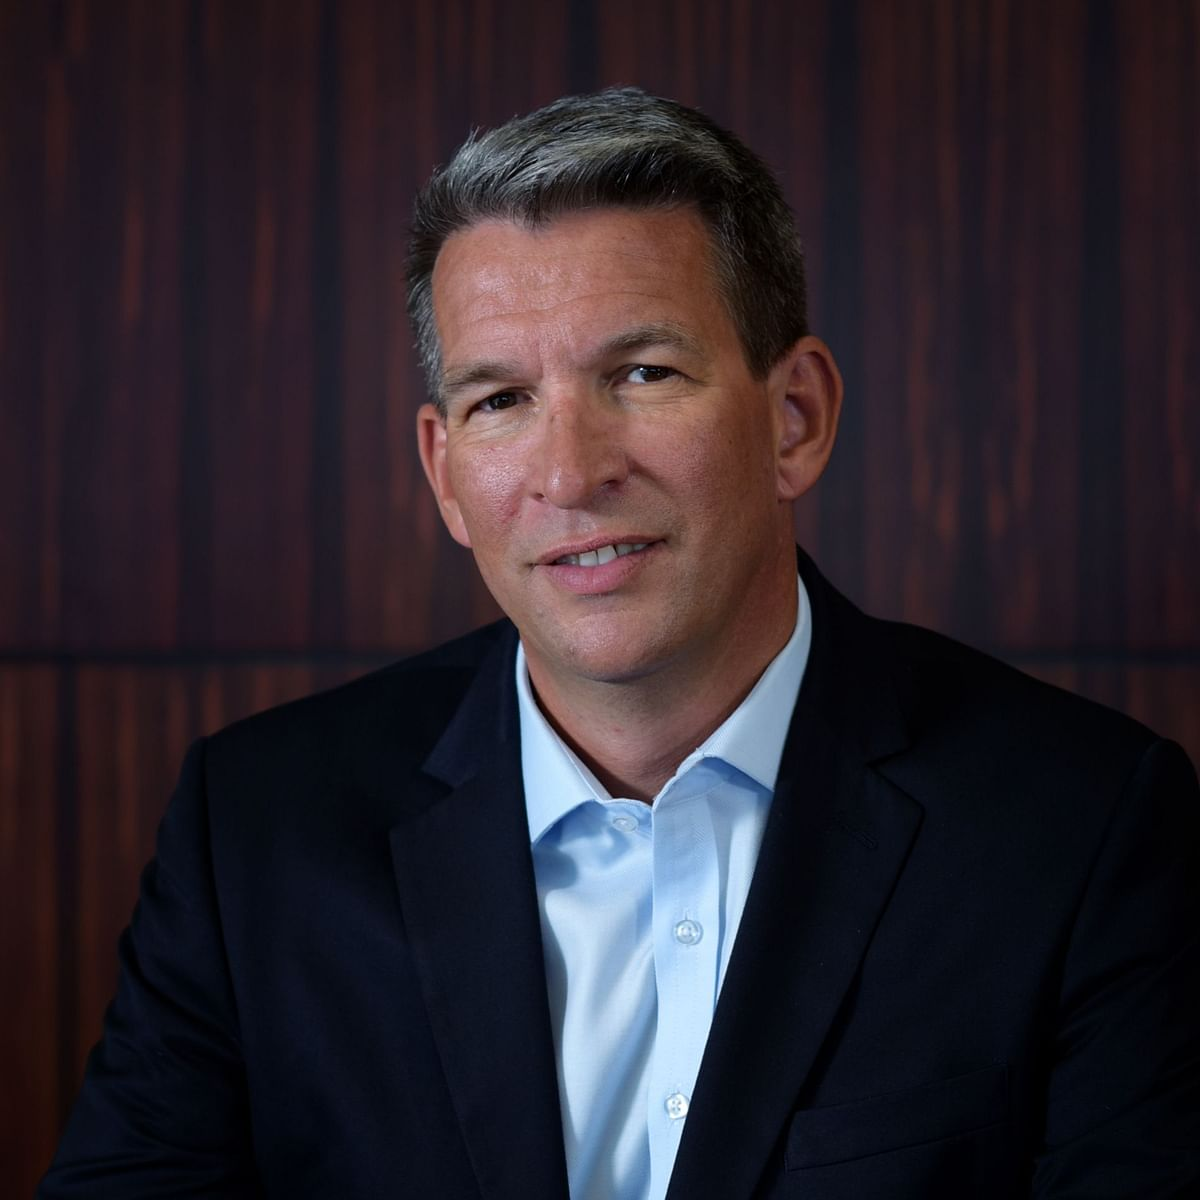 Steve Allen to Lead dnata's Global Operations